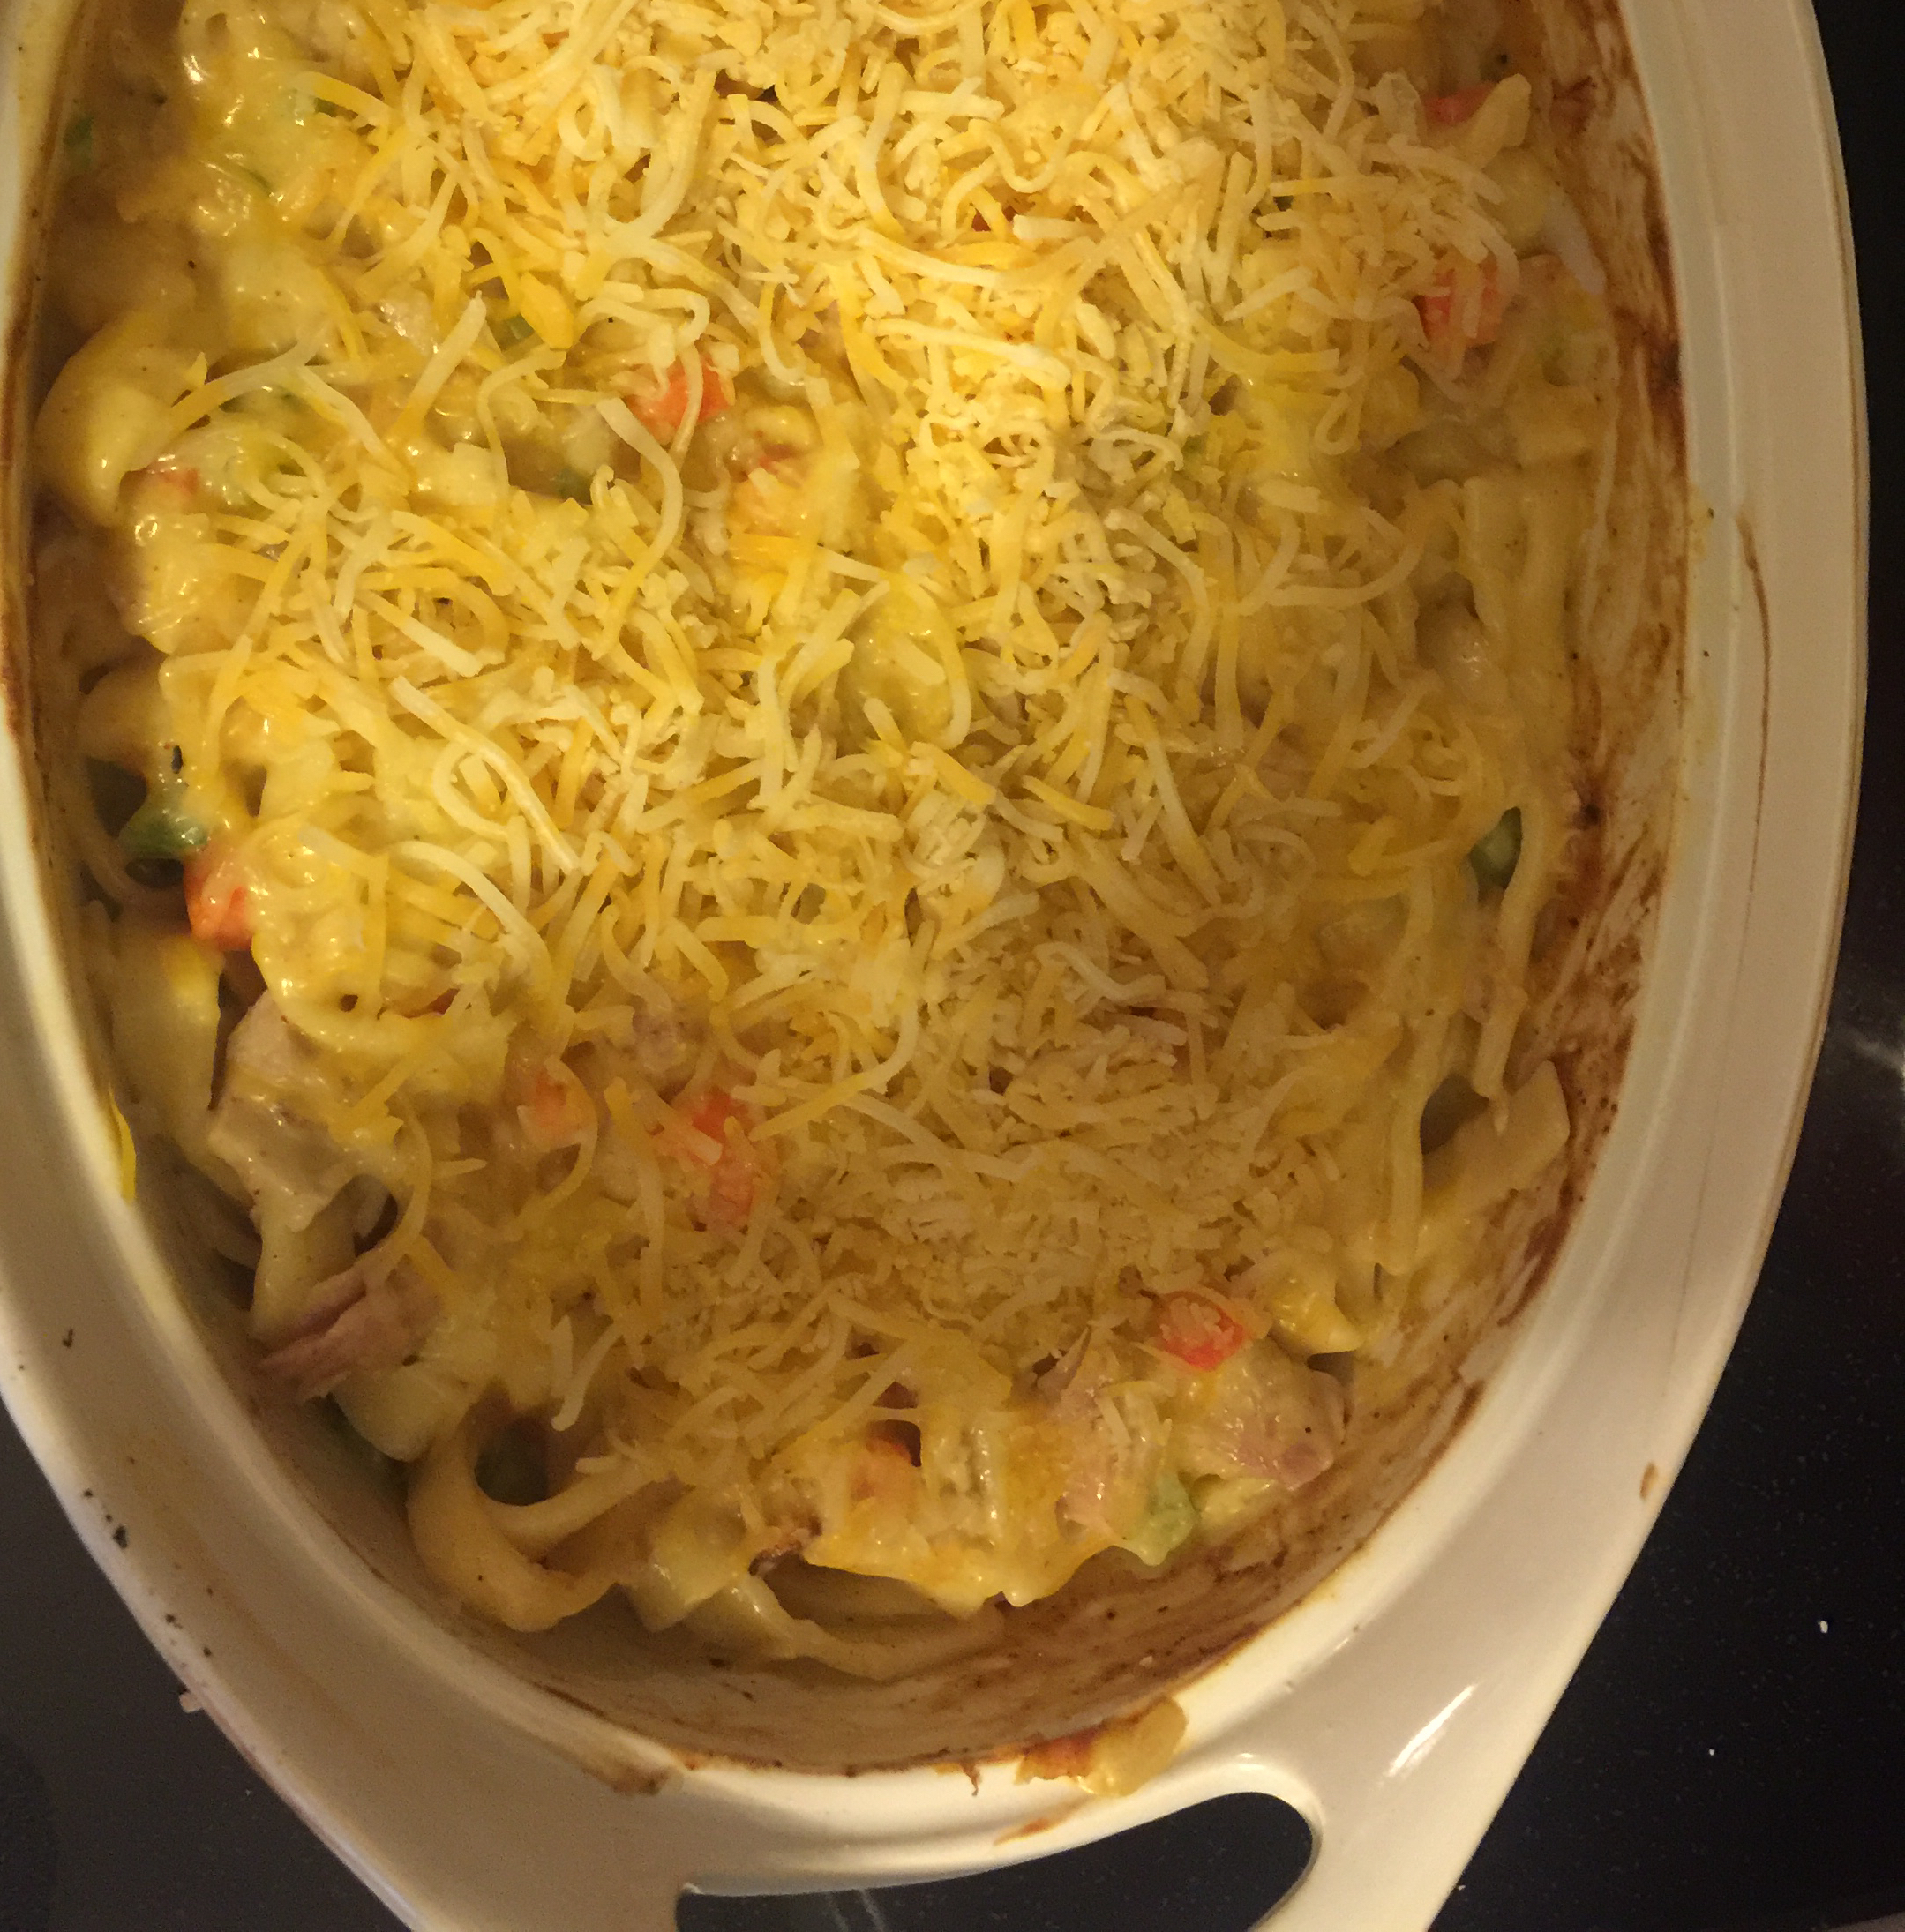 Hearty Chicken and Noodle Casserole vex